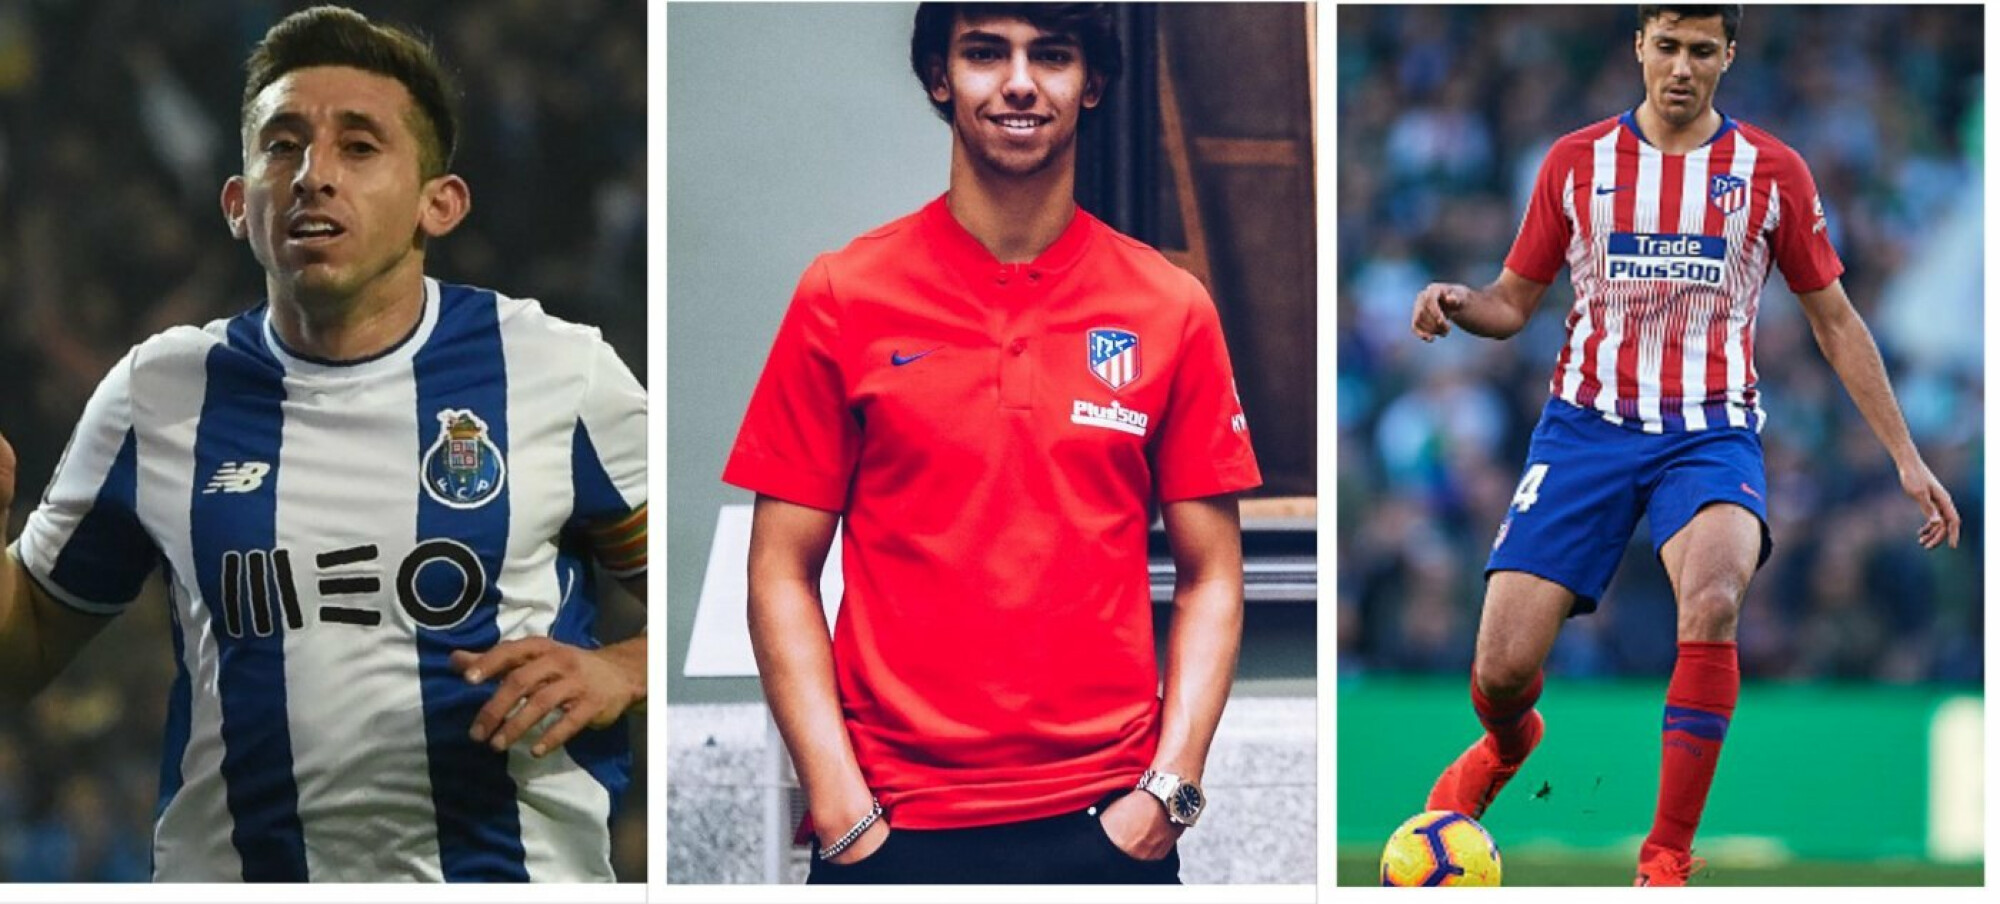 Joao Felix to Atleti, Rodri to Man City: All the confirmed transfers from Wednesday